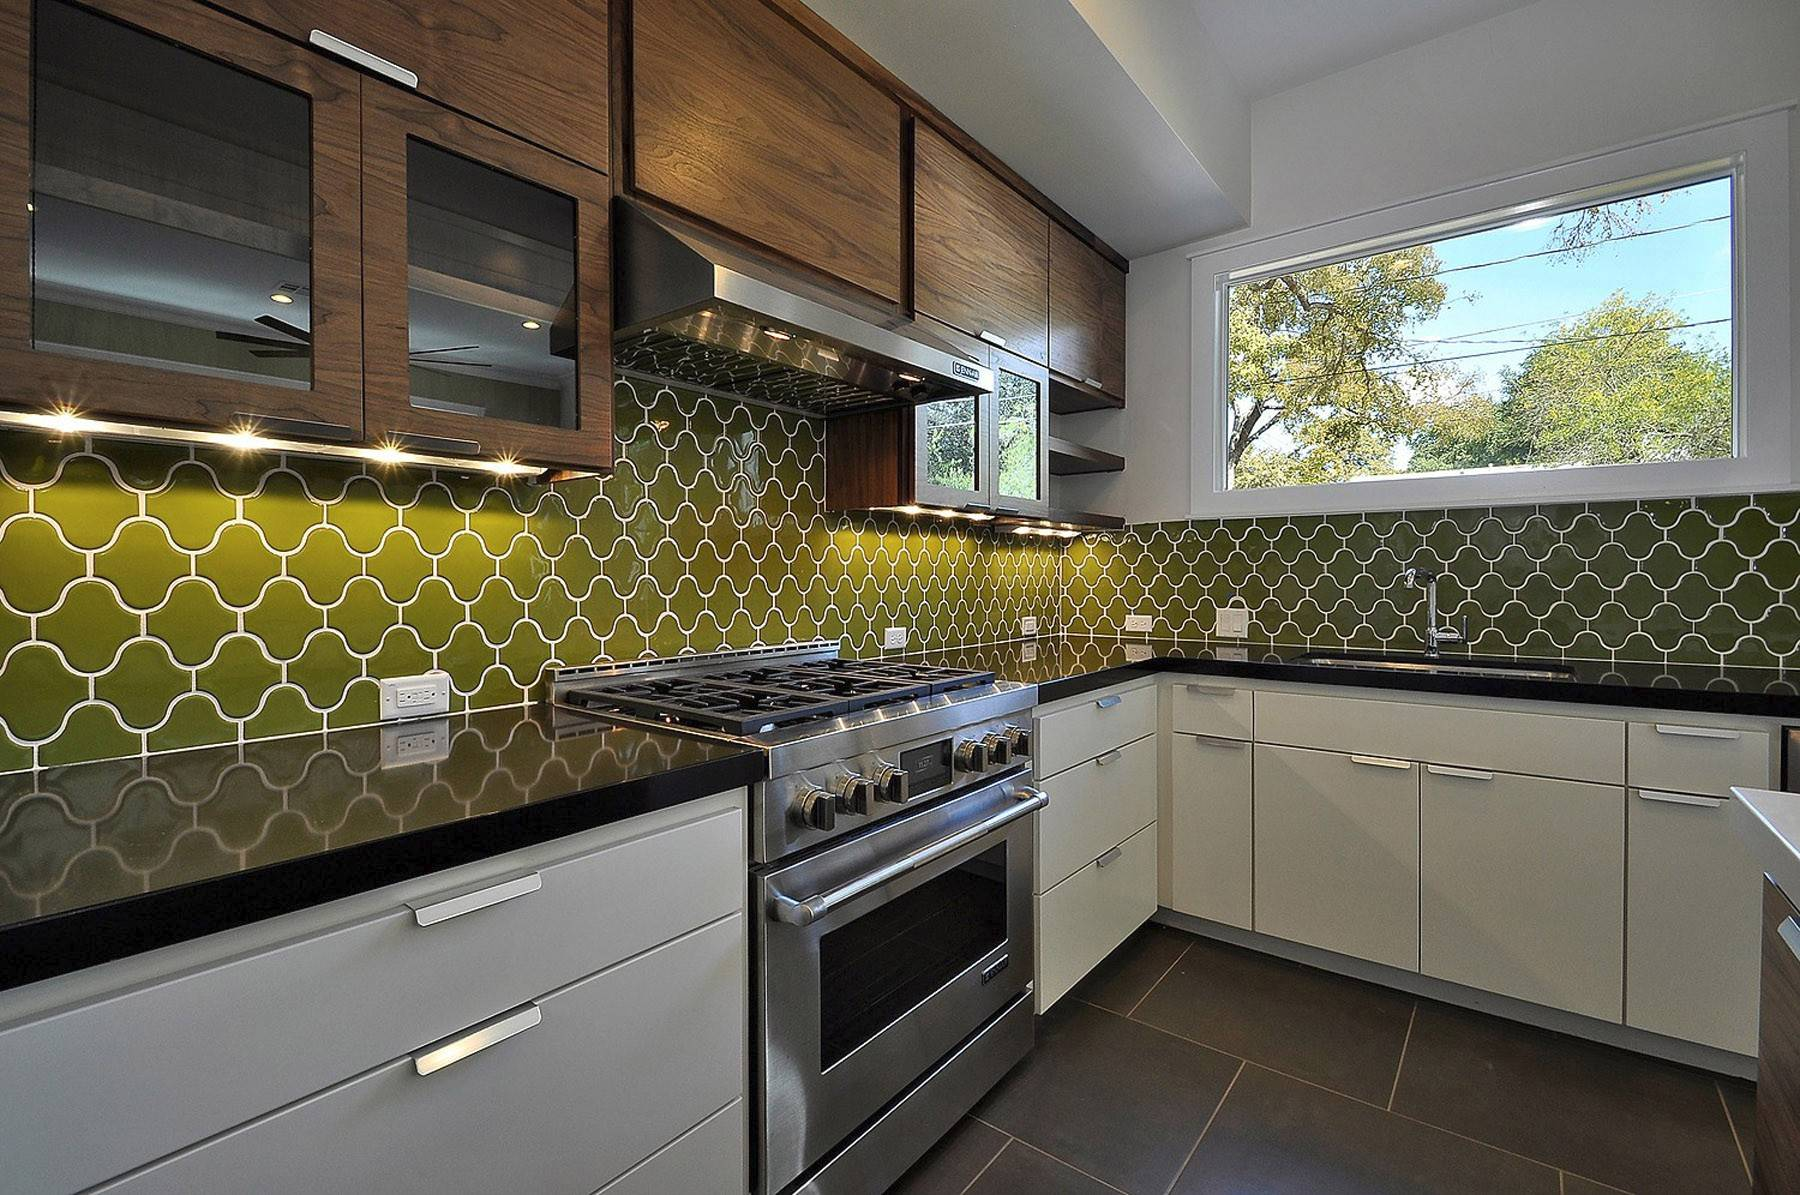 These green backsplash tiles are made of recycled materials and clay. Consider using unusual shapes and your favorite colors for a kitchen you can enjoy daily.